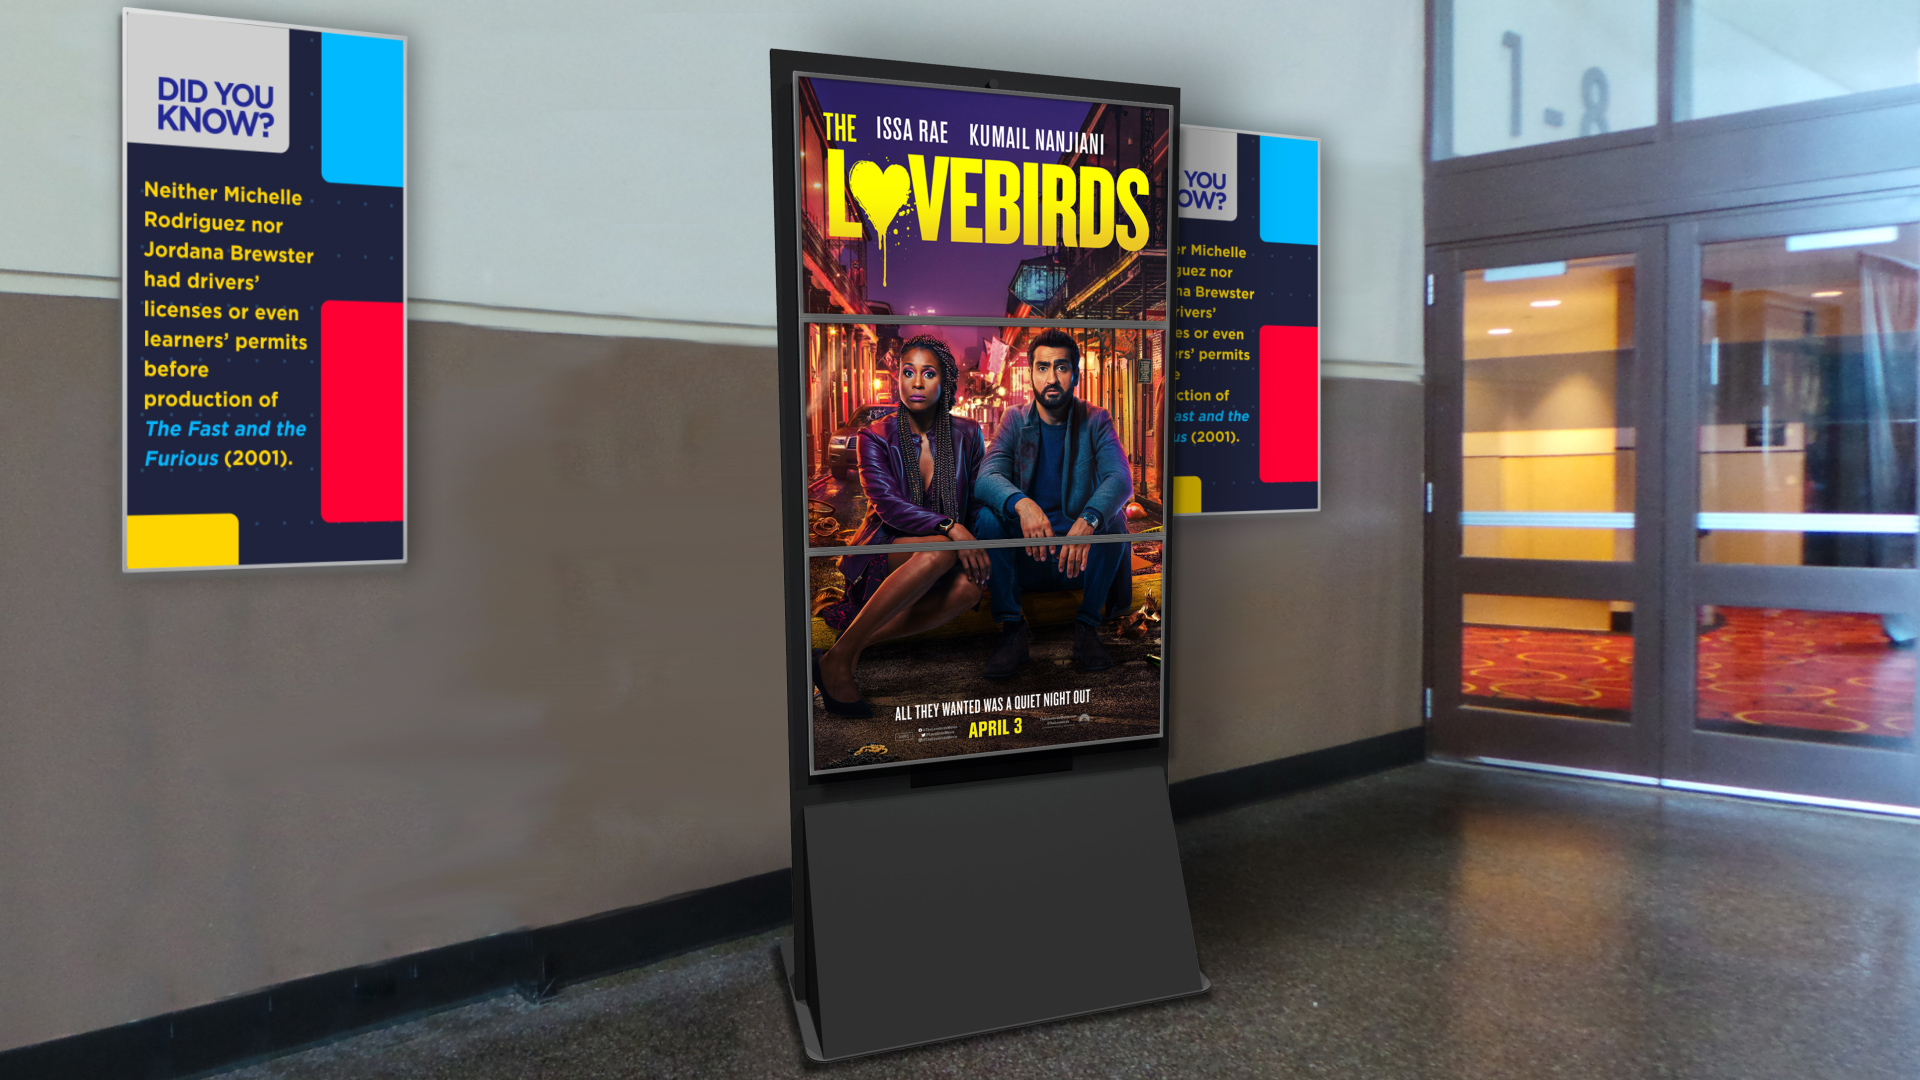 Lobby displaying movie advertisement